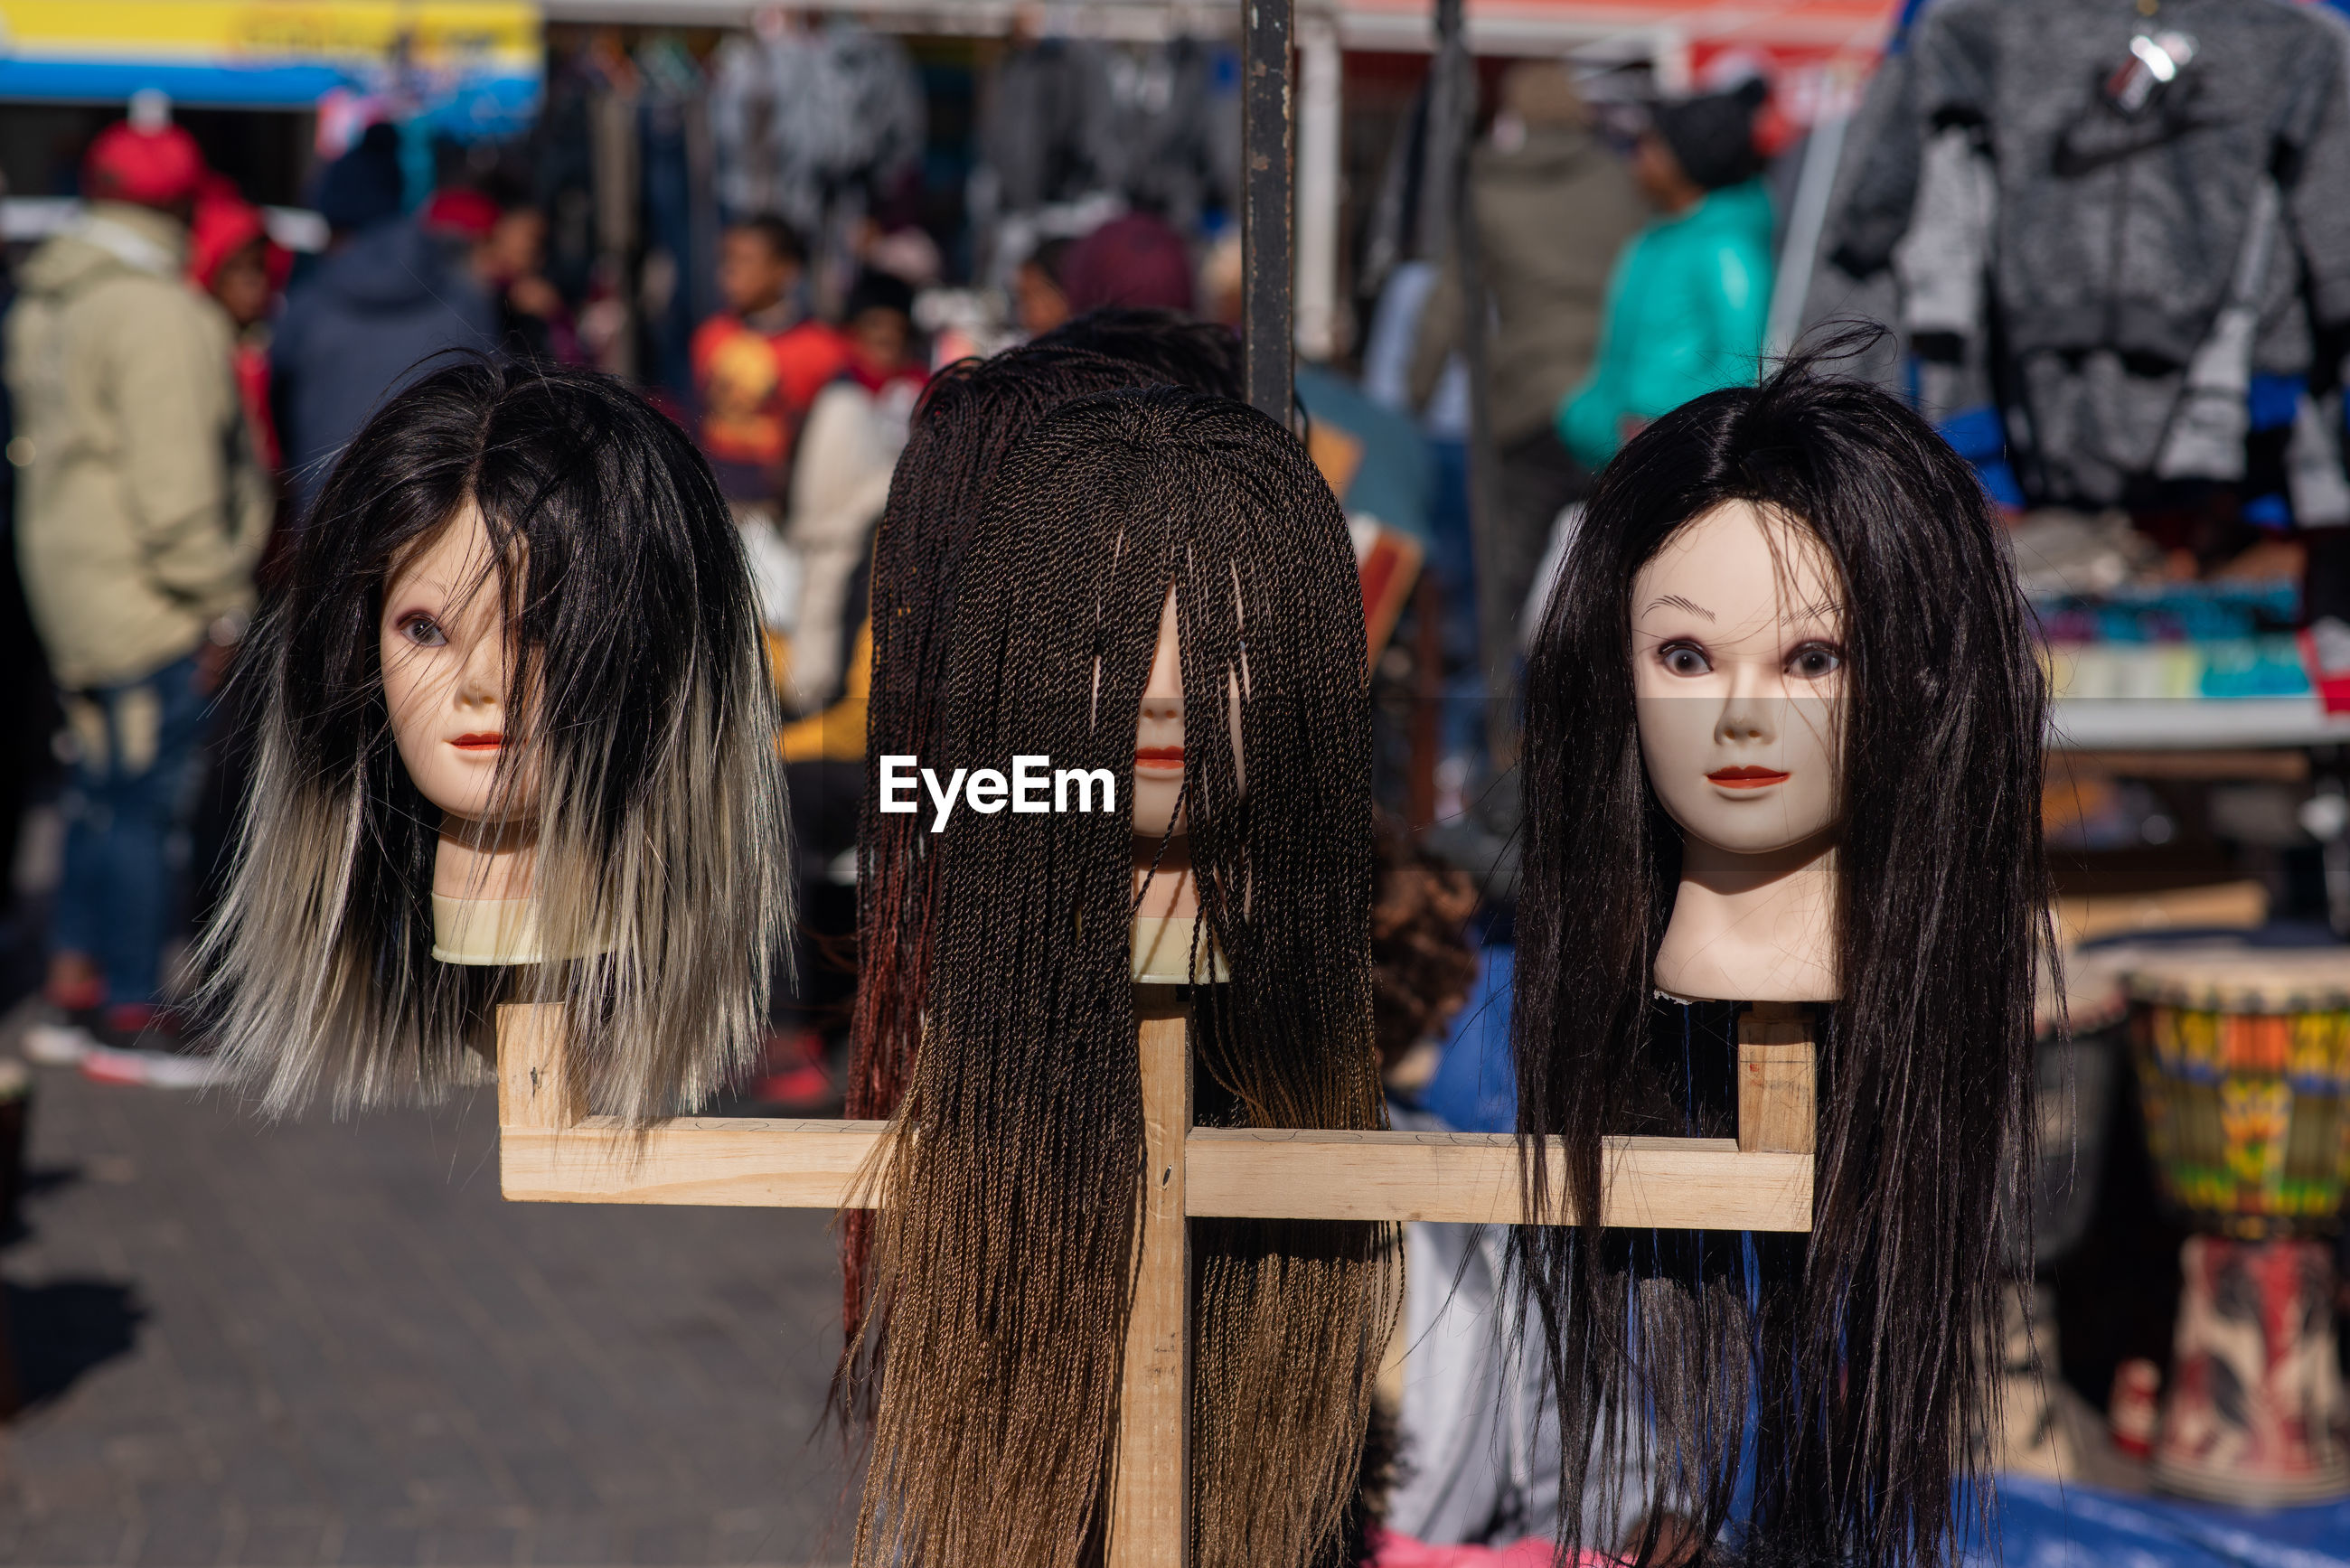 Mannequins for sale at market in city